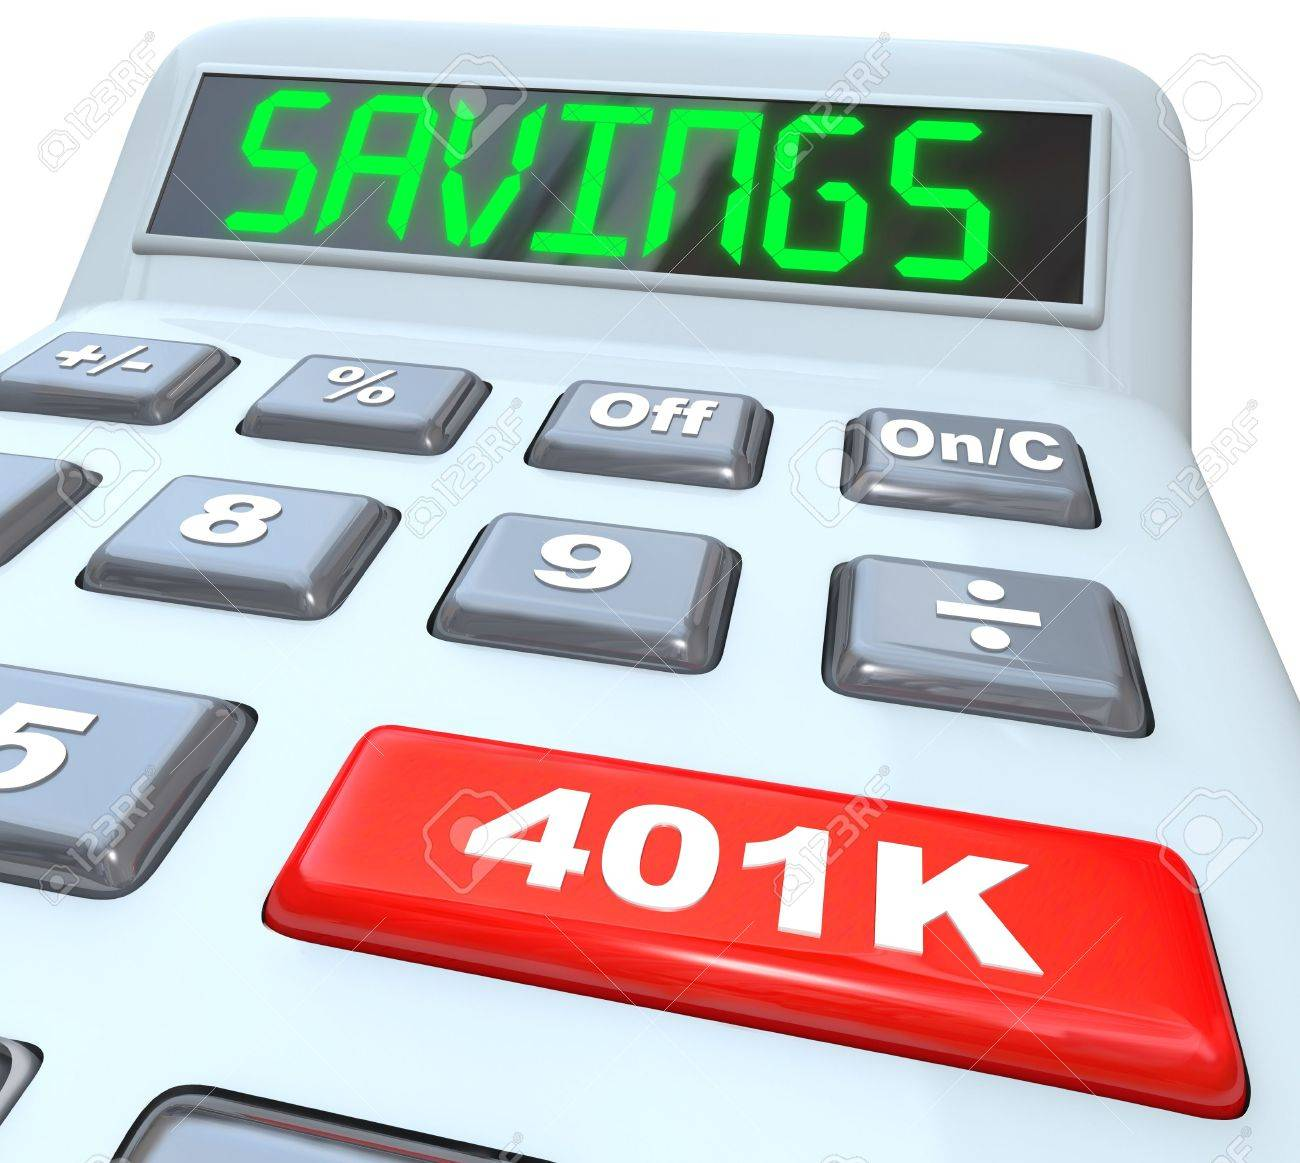 The word Savings on a calculator and 401K on a red button to illustrate financial security and building or investing in a nest-egg of money for the future Stock Photo - 19587199